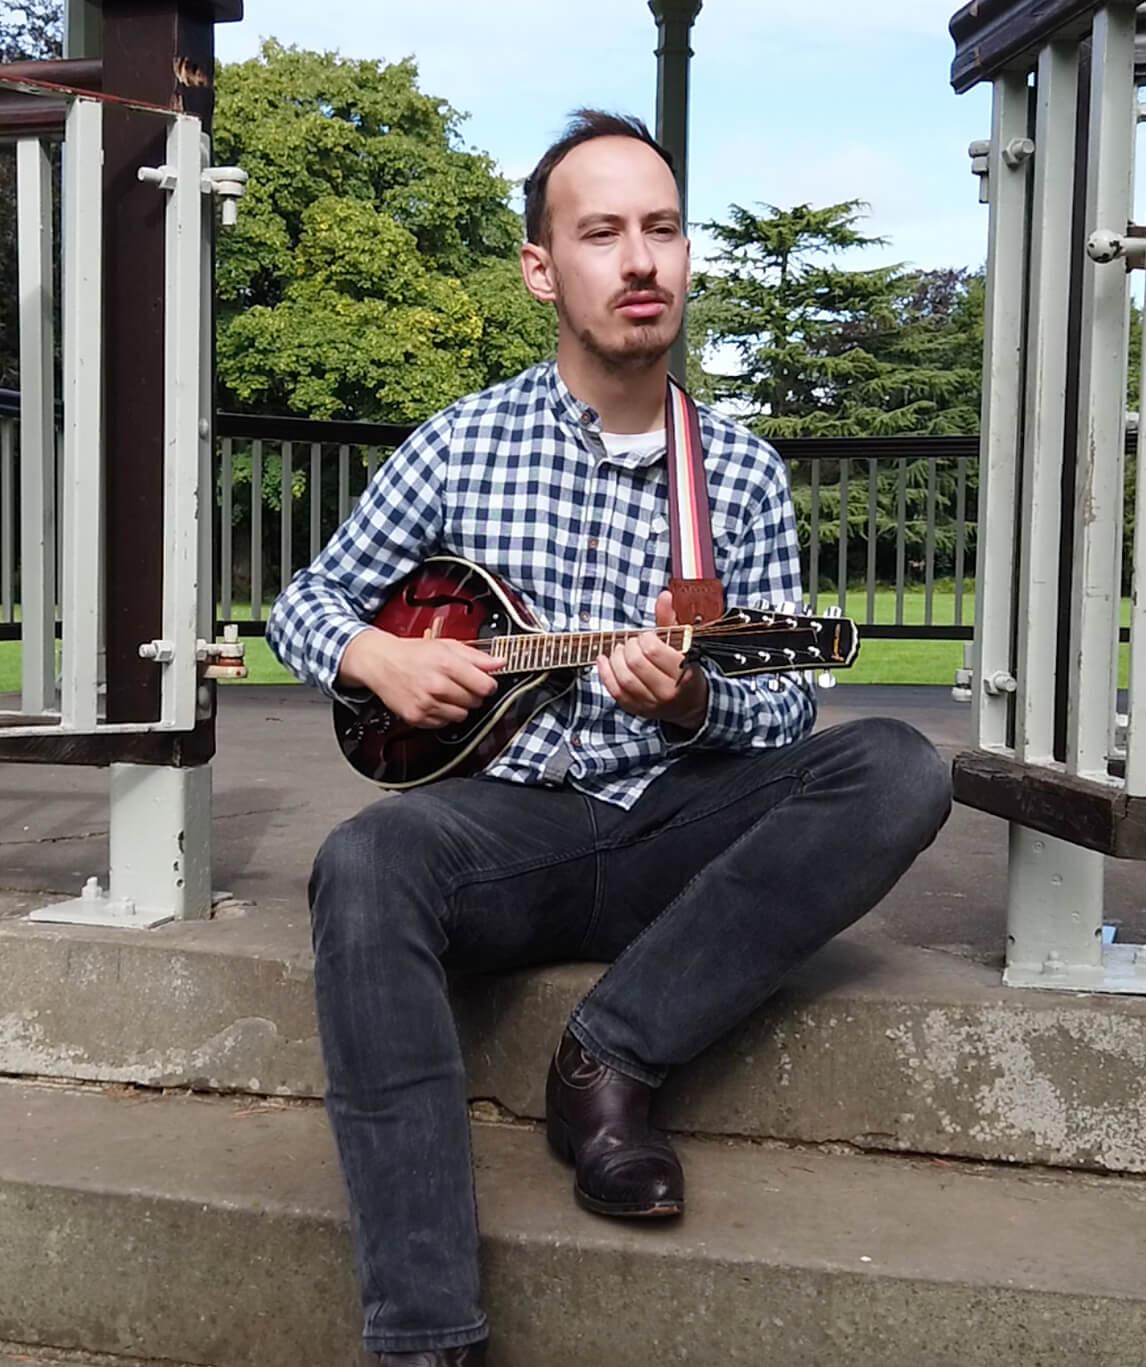 Ben Atkinson sitting on some steps and playing a Mandolin